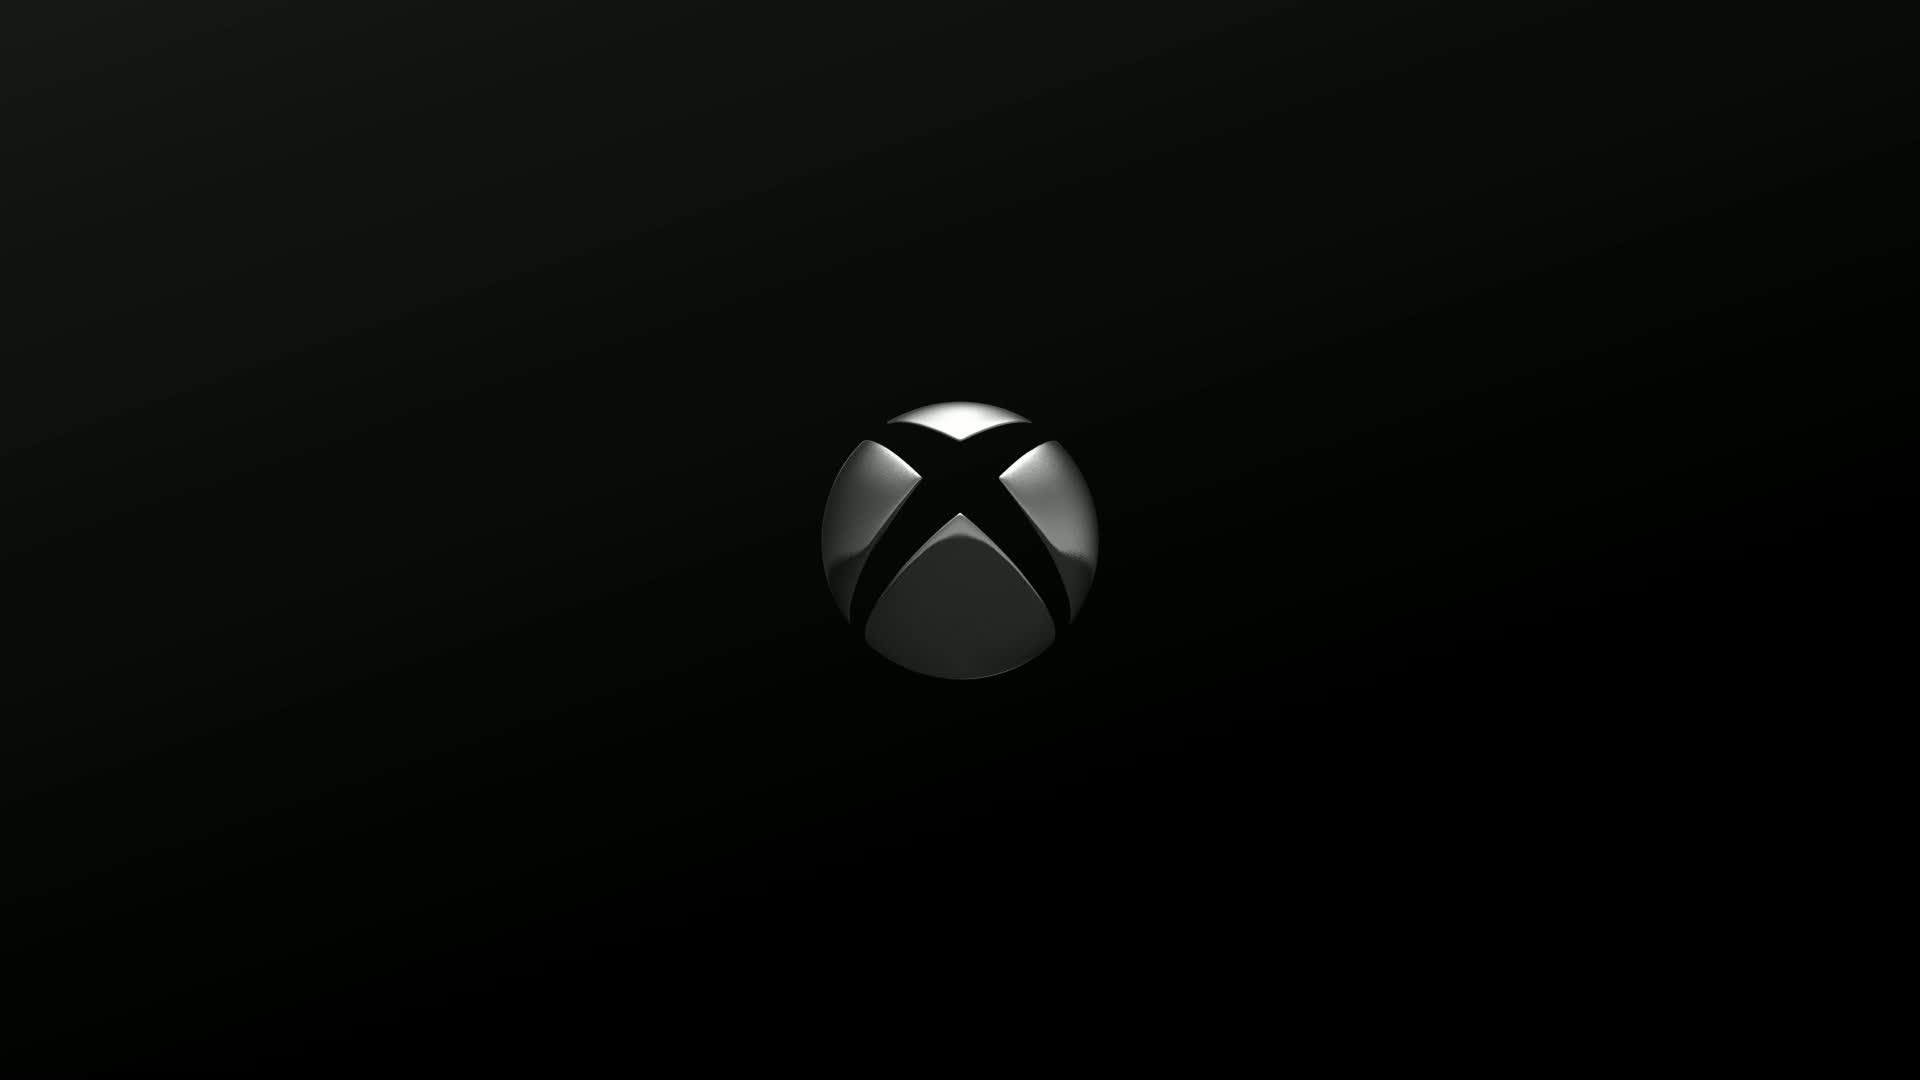 Xbox Logo Wallpaper (73+ images)